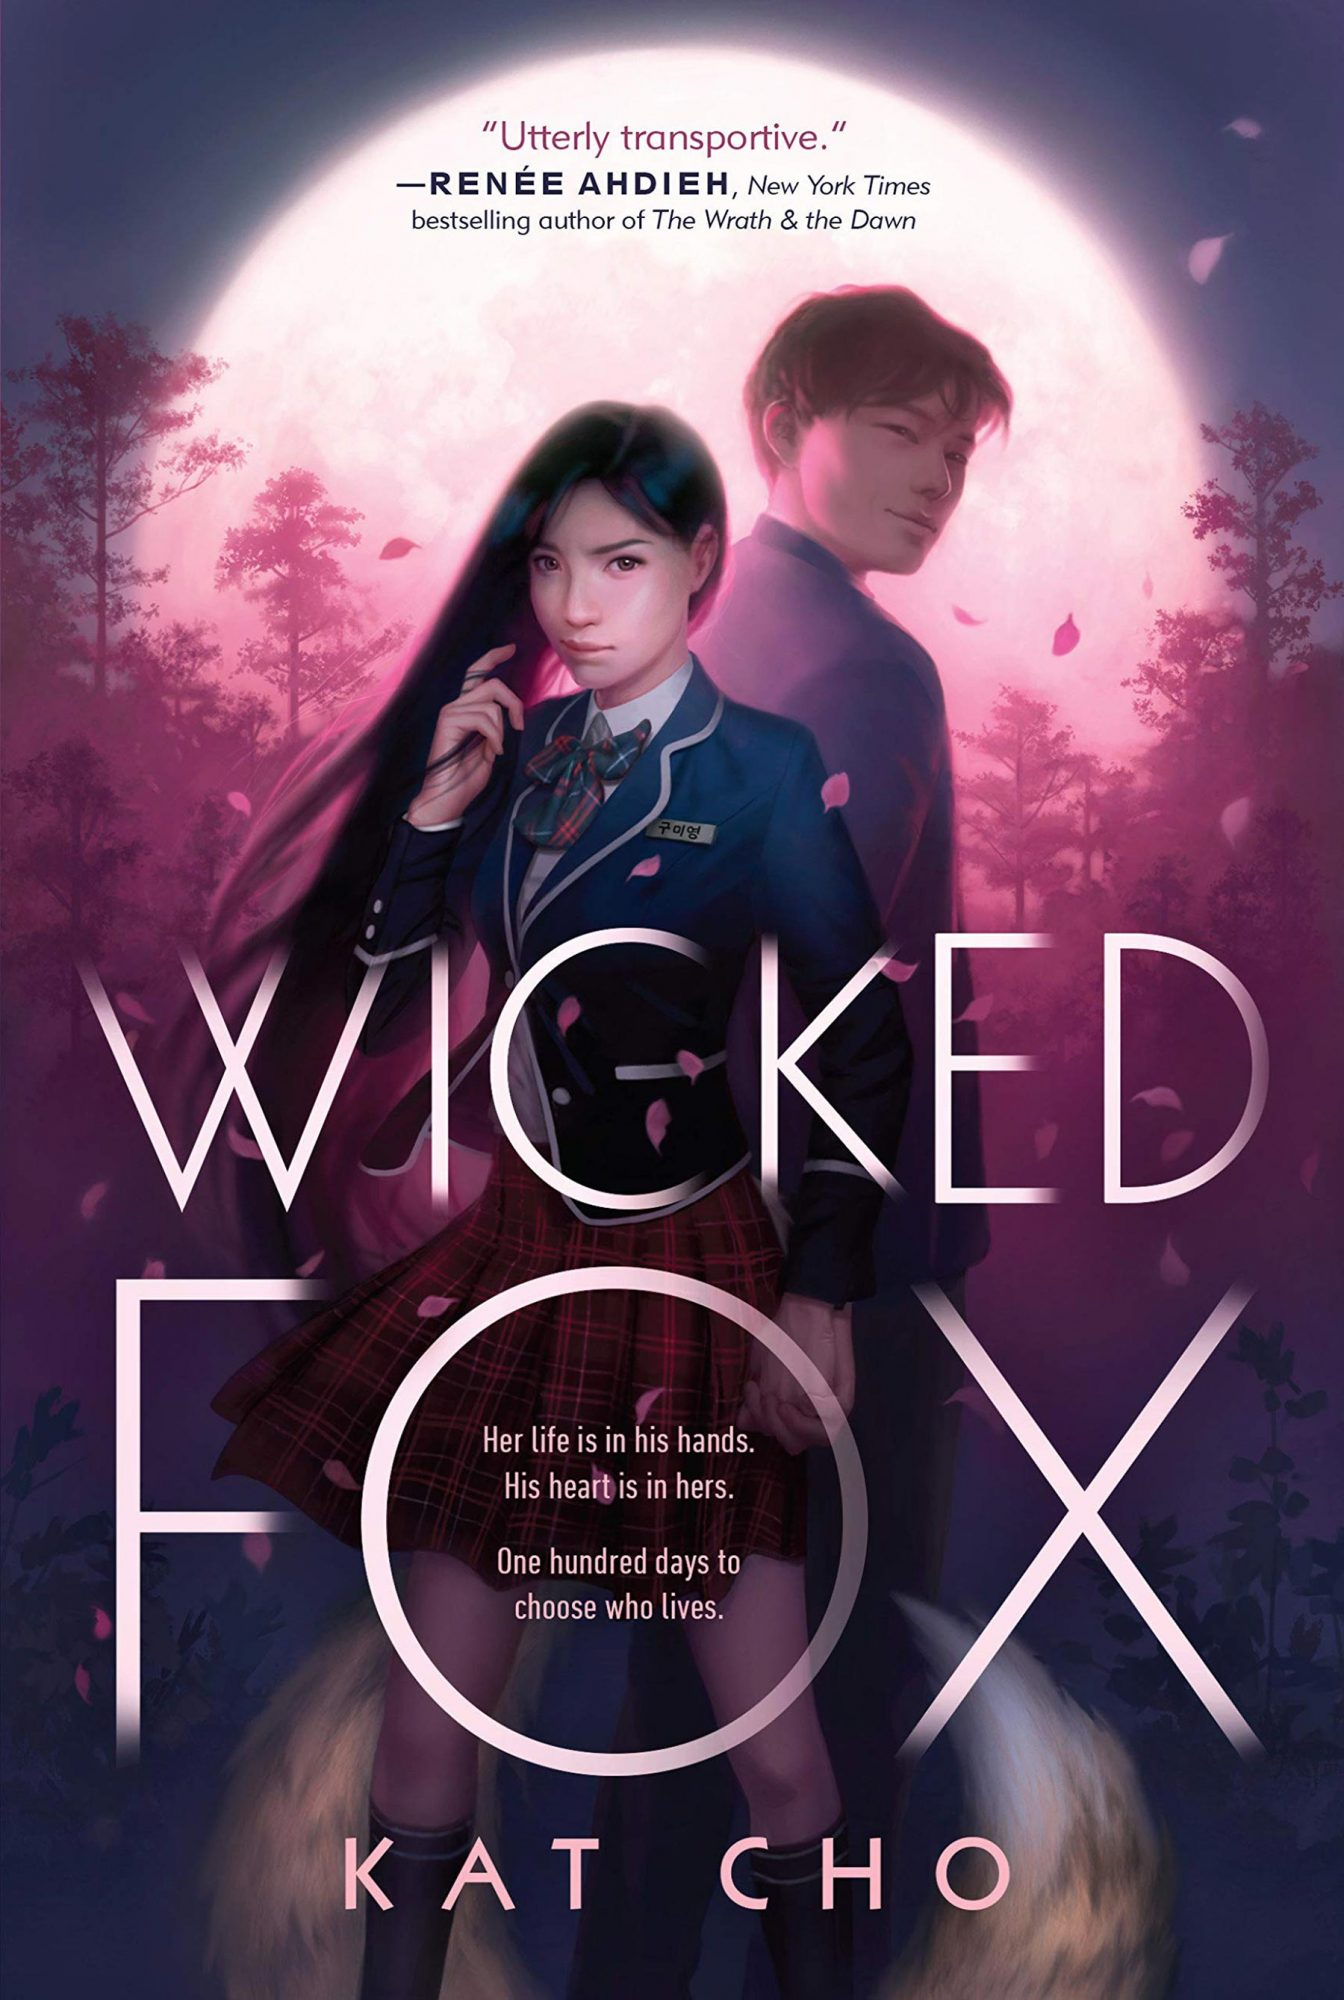 Wicked Fox, by Kat Cho